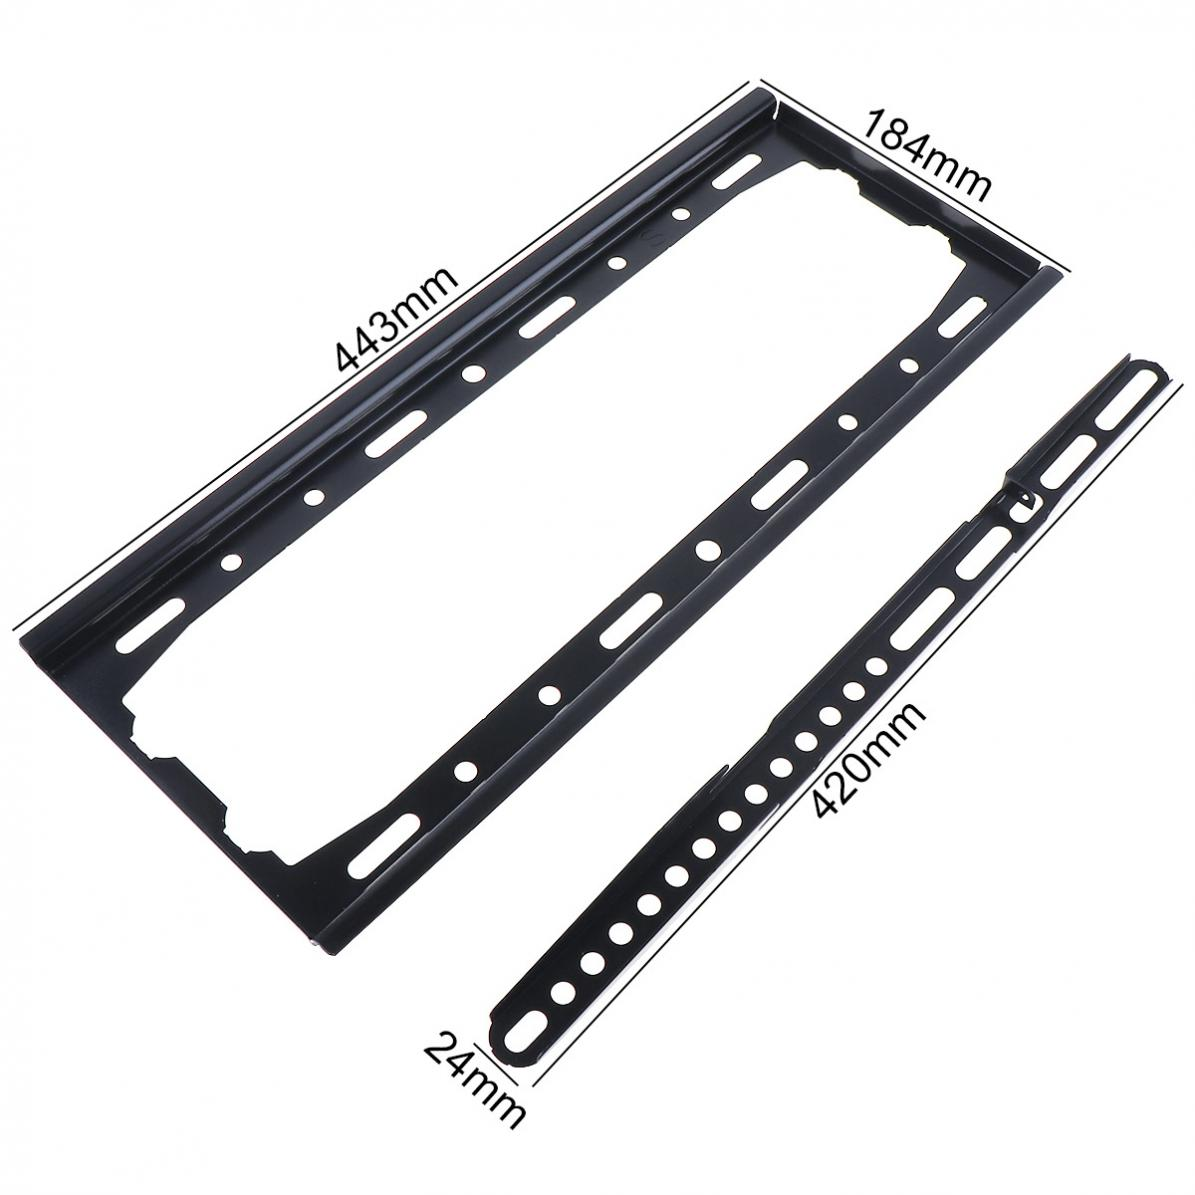 Image 2 - Universal convenient 45KG TV Wall Mount Bracket Fixed Flat Panel TV Frame for 26 55 Inch LCD LED Monitor Flat PanelTV Mount   - AliExpress